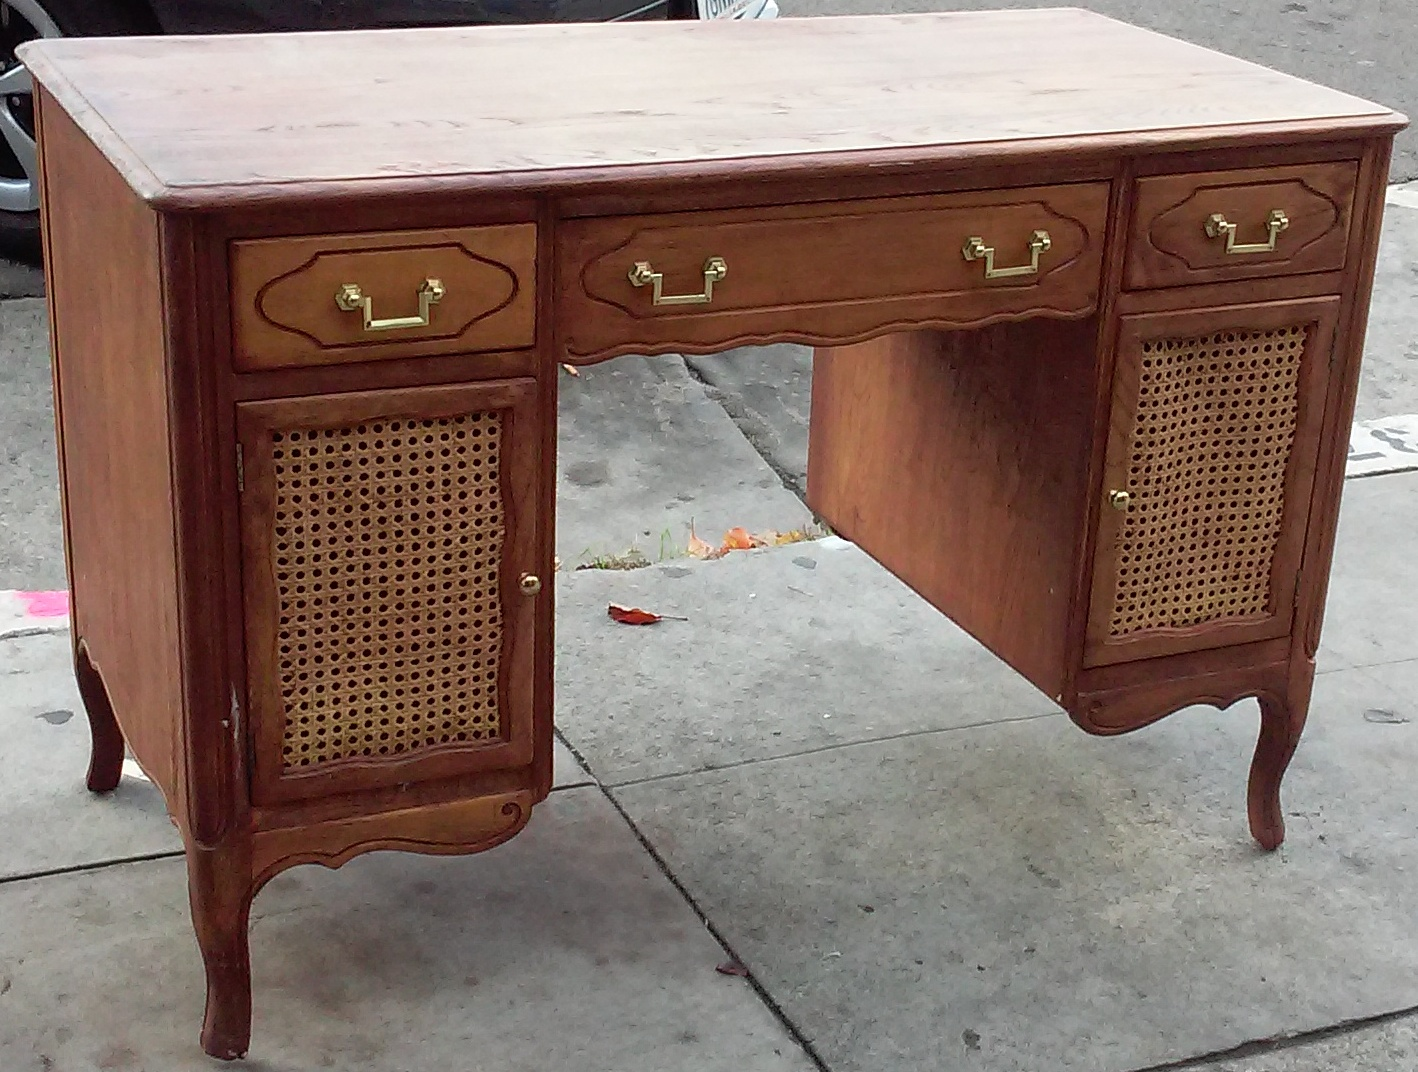 Uhuru furniture collectibles sold reduced tomlinson for Reduced furniture